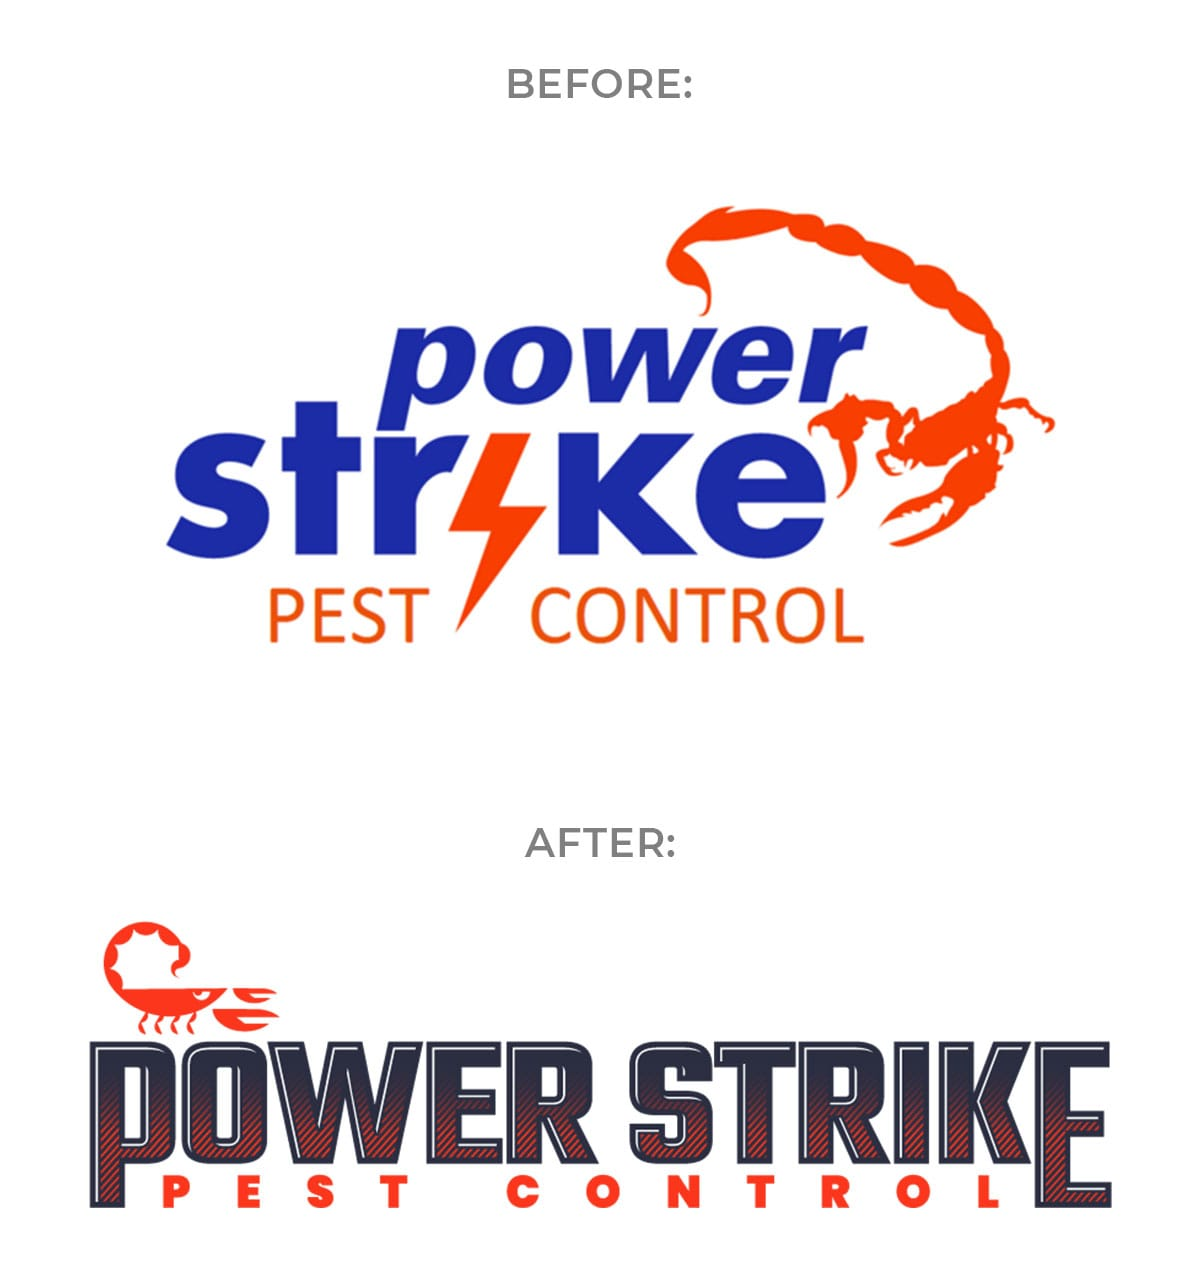 Power Strike Pest Control New Logo Design by Motion Tactic - Business Rebranding